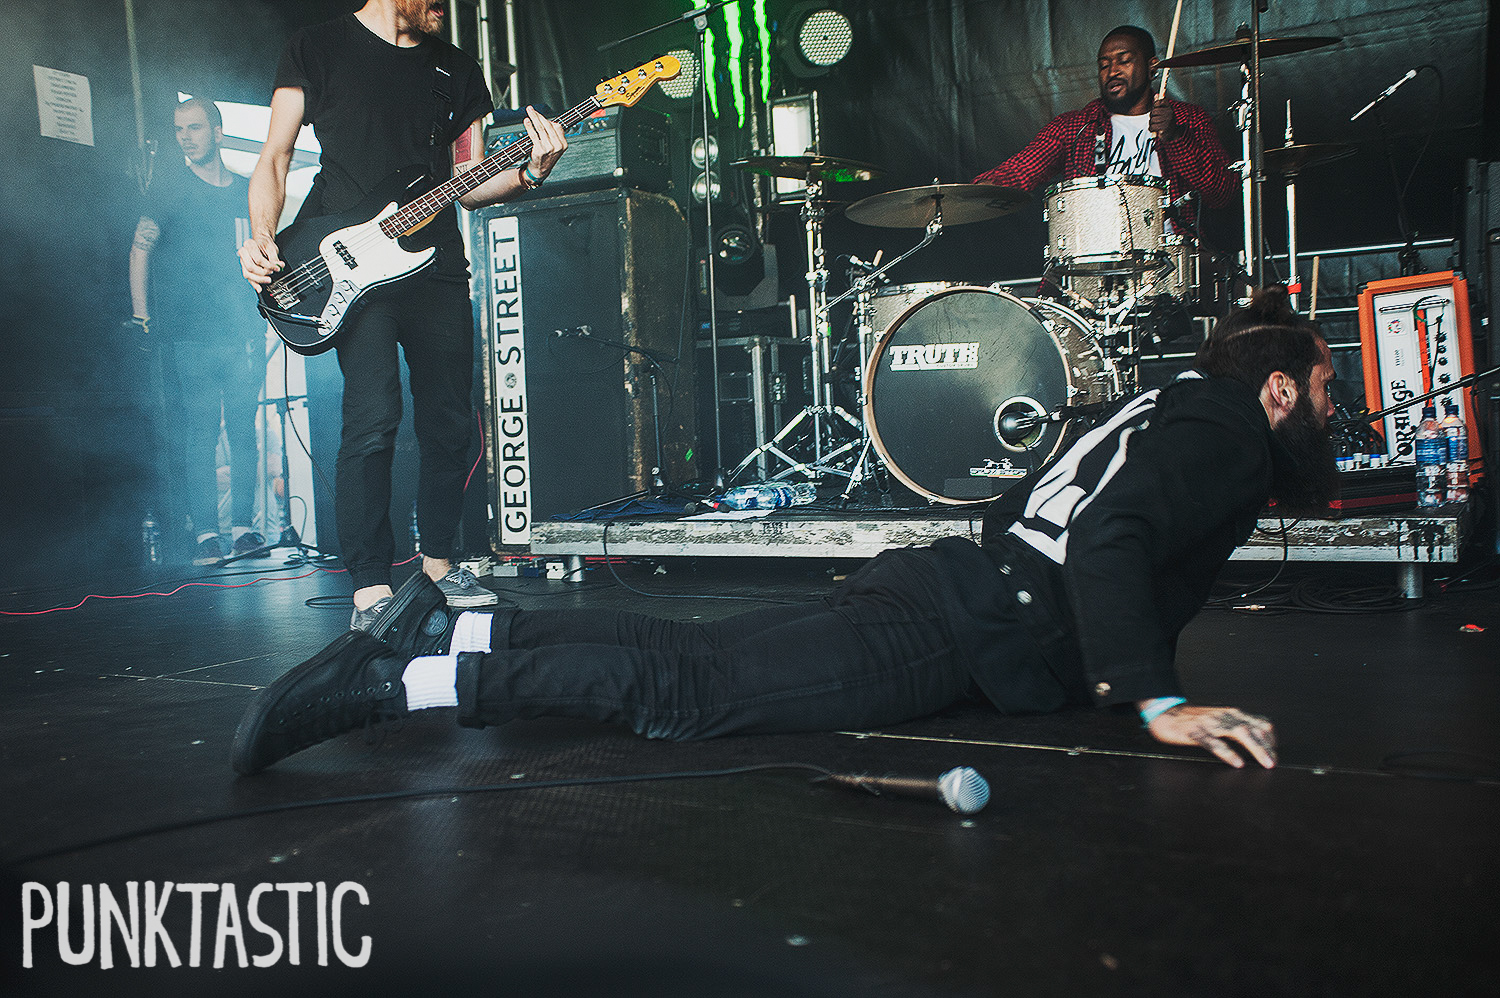 letlive. doing what they do best.